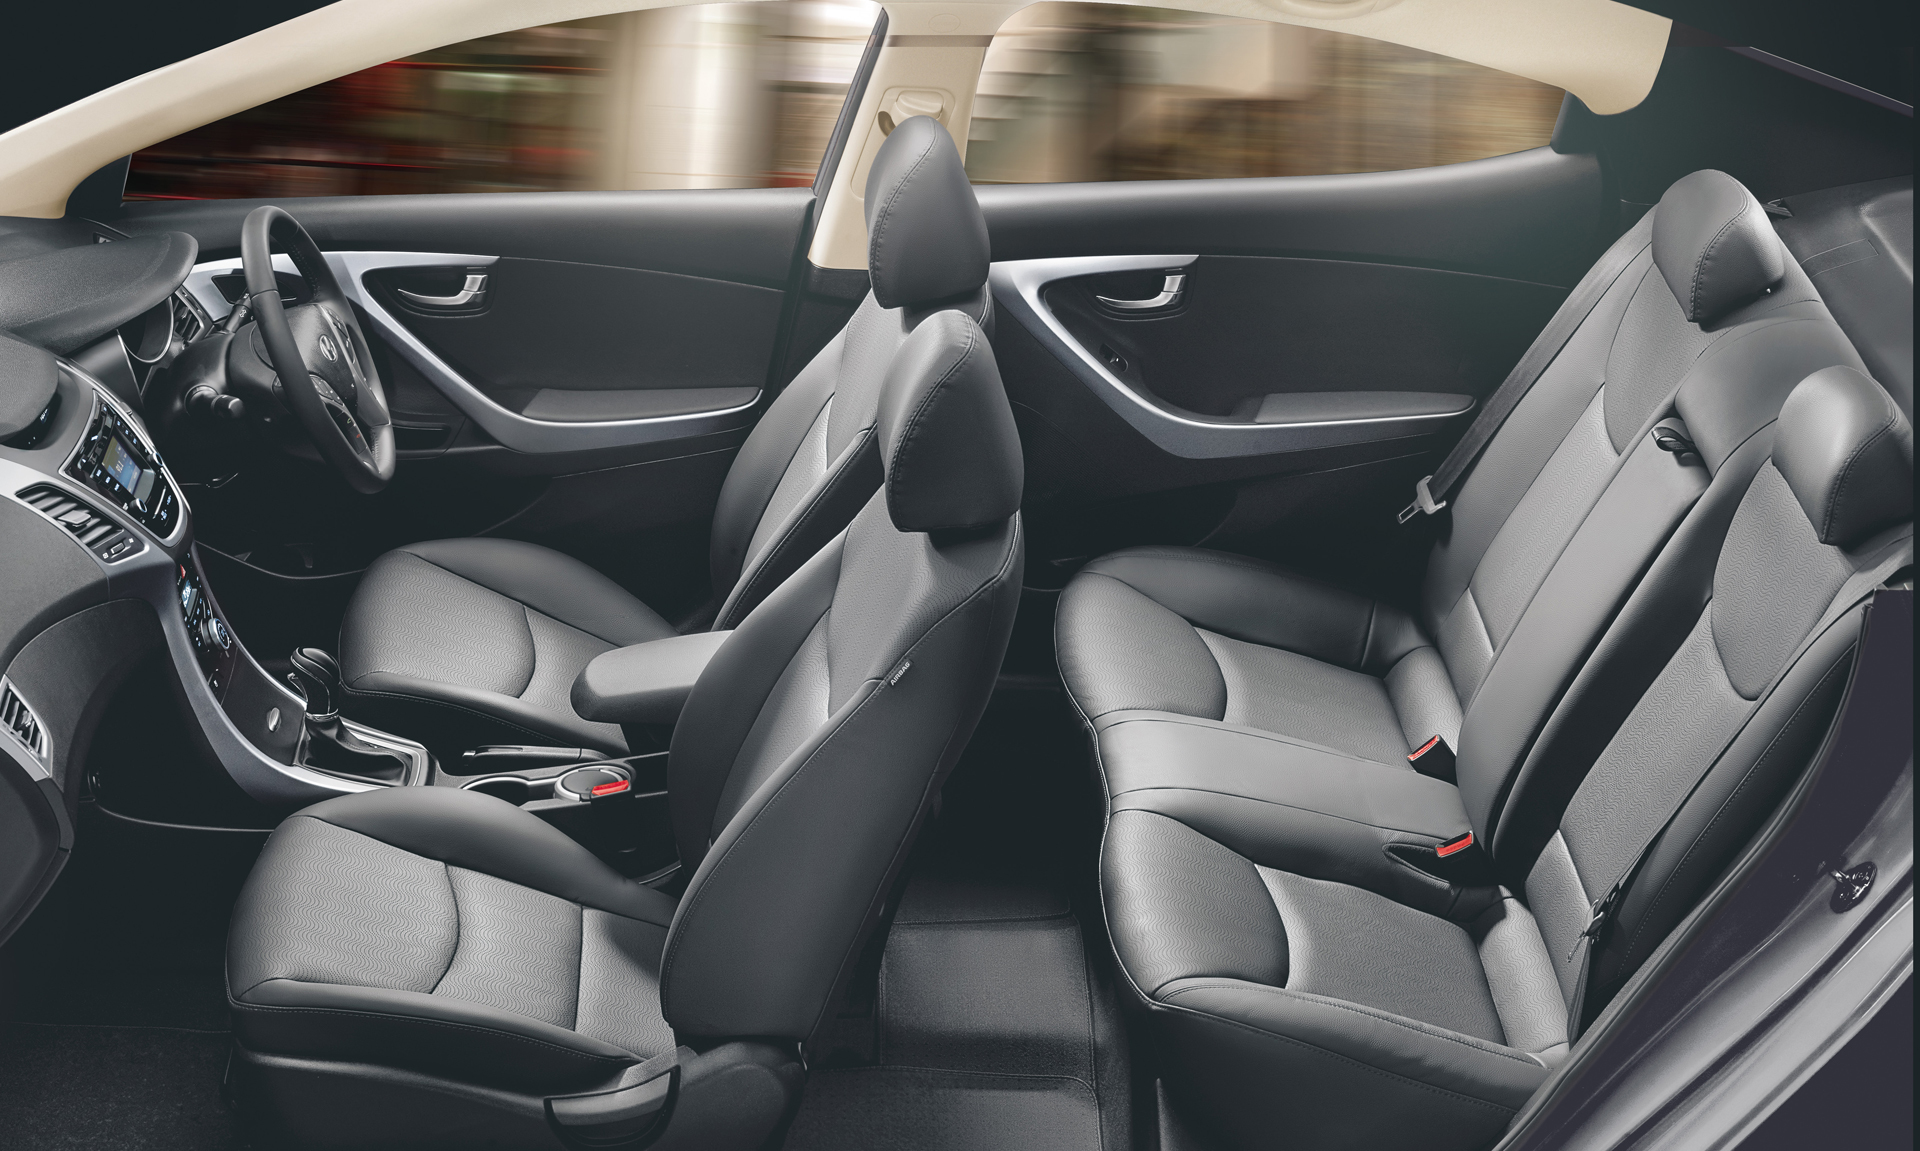 Interiors of Existing Hyundai Elantra